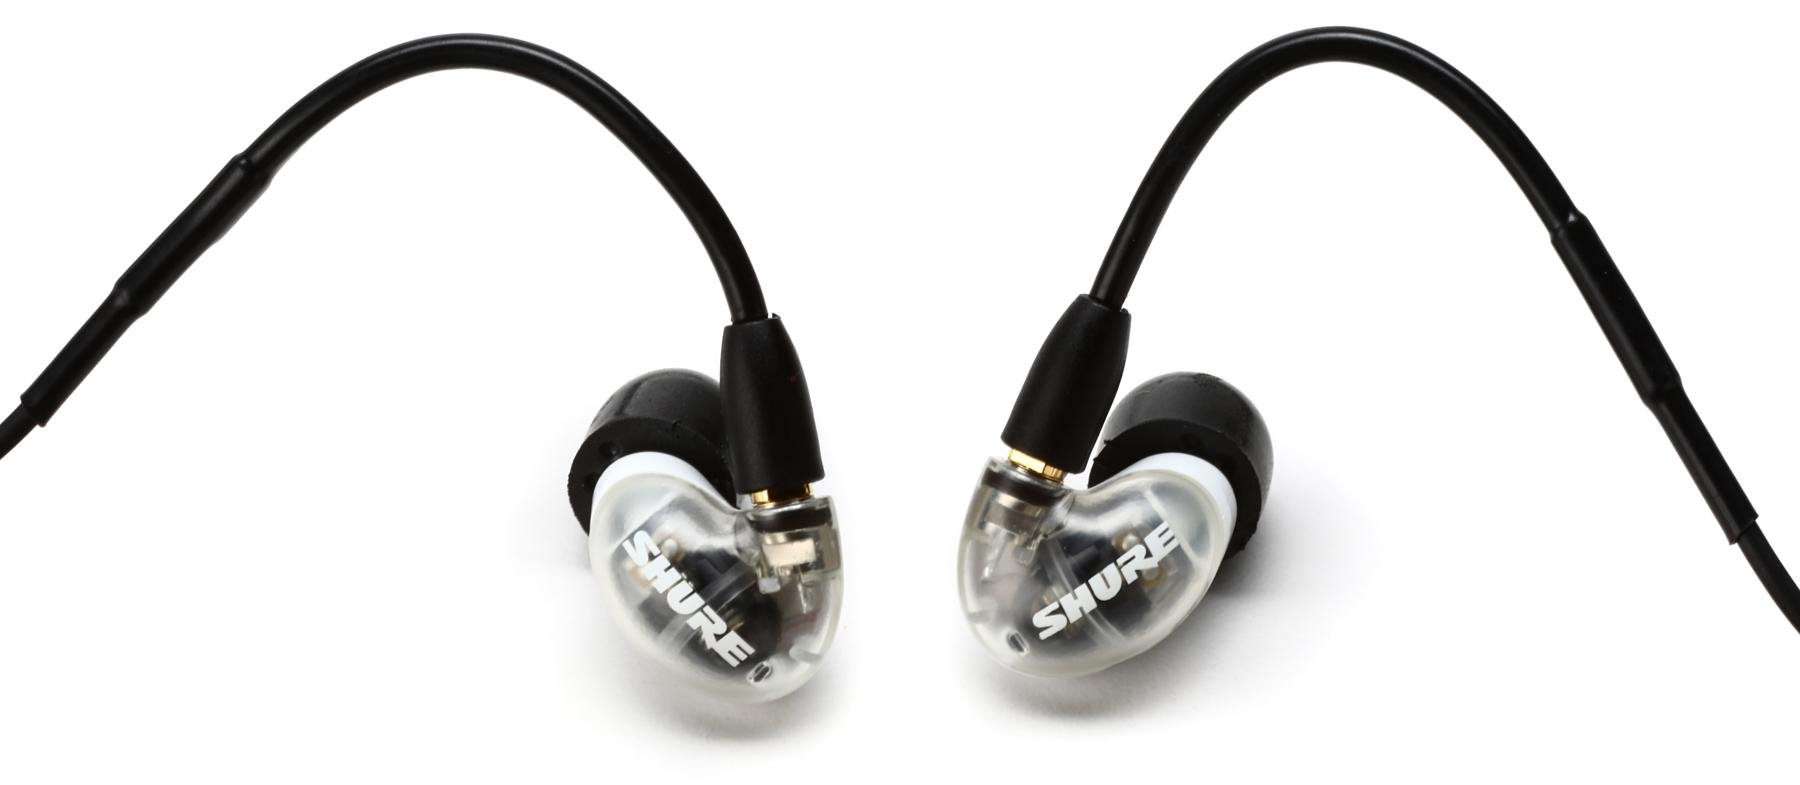 Shure AONIC 4 Sound Isolating Earphones - White   Sweetwater